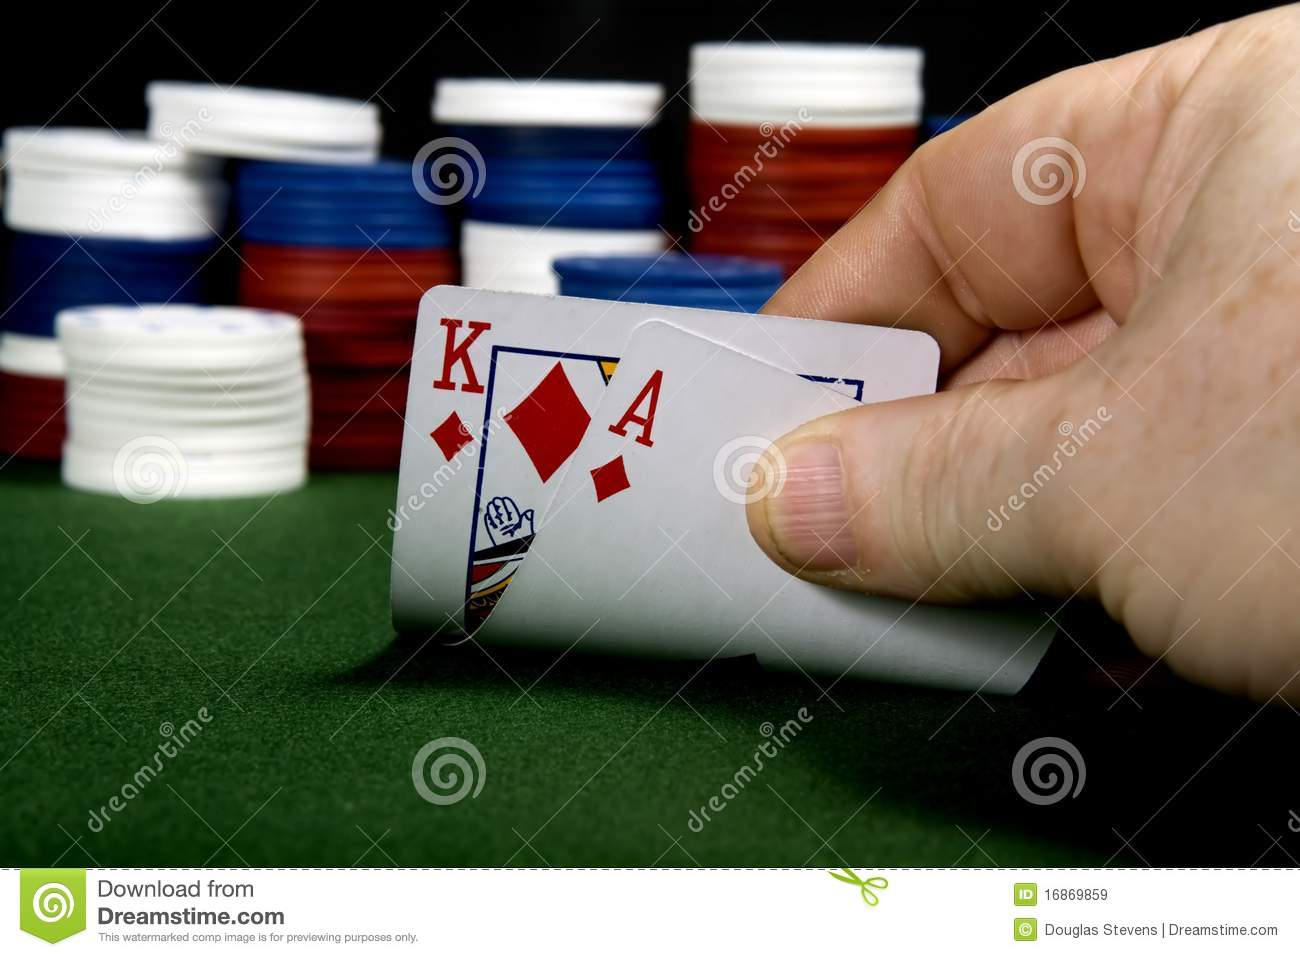 Poker straight king ace two